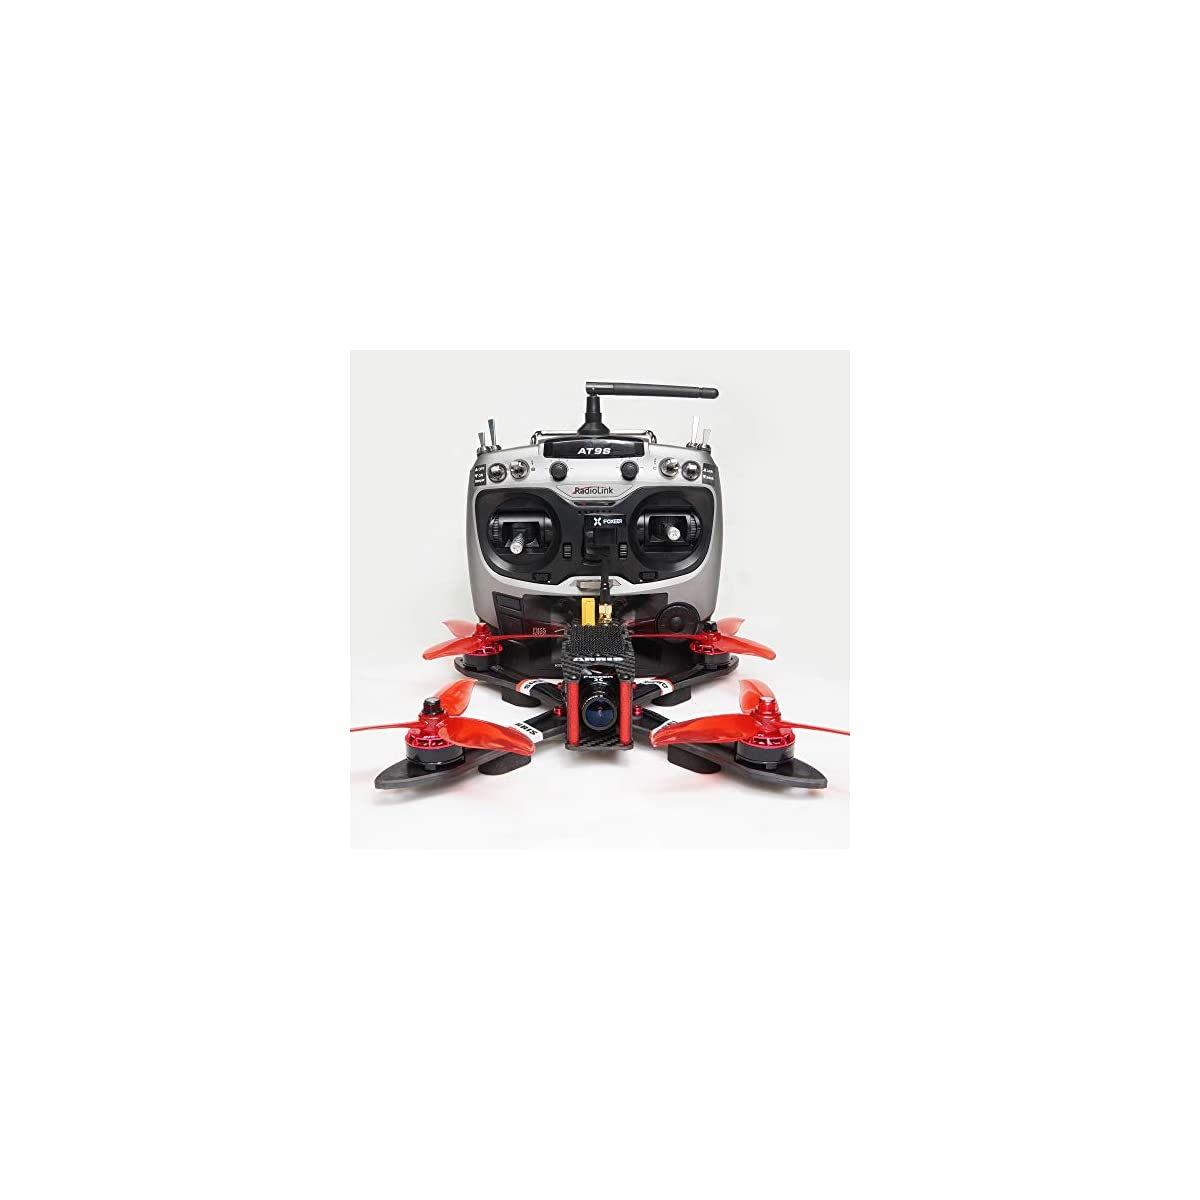 "SaleProductsOffer - No.1 Best Online Store 51-eE-A4XqL ARRIS X220 V2 220MM 5"" FPV Racing Drone RC Quadcopter RTF w/Radiolink AT9S + Omnibus F4 Flight Controller + Foxeer Camera + 4S Lipo Battery + 5.8G TX"